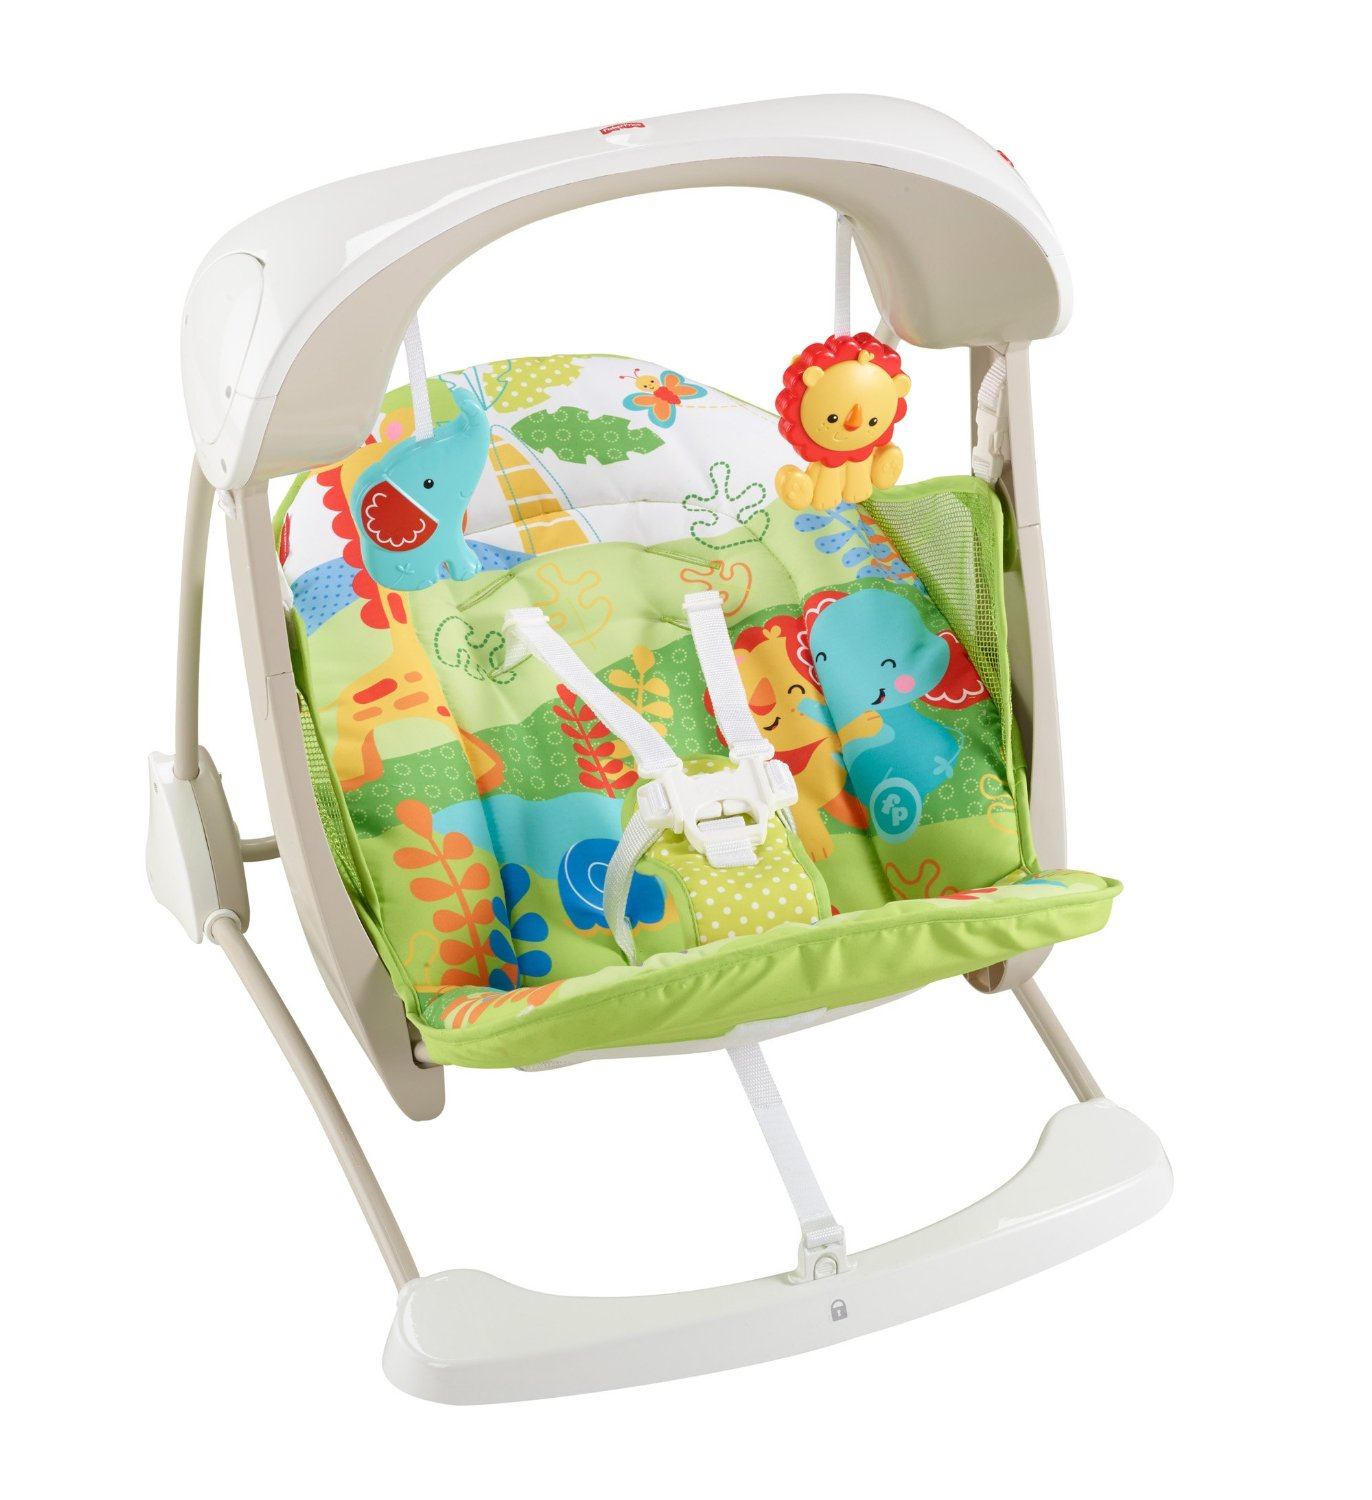 Rainforest Friends Swing & Seat